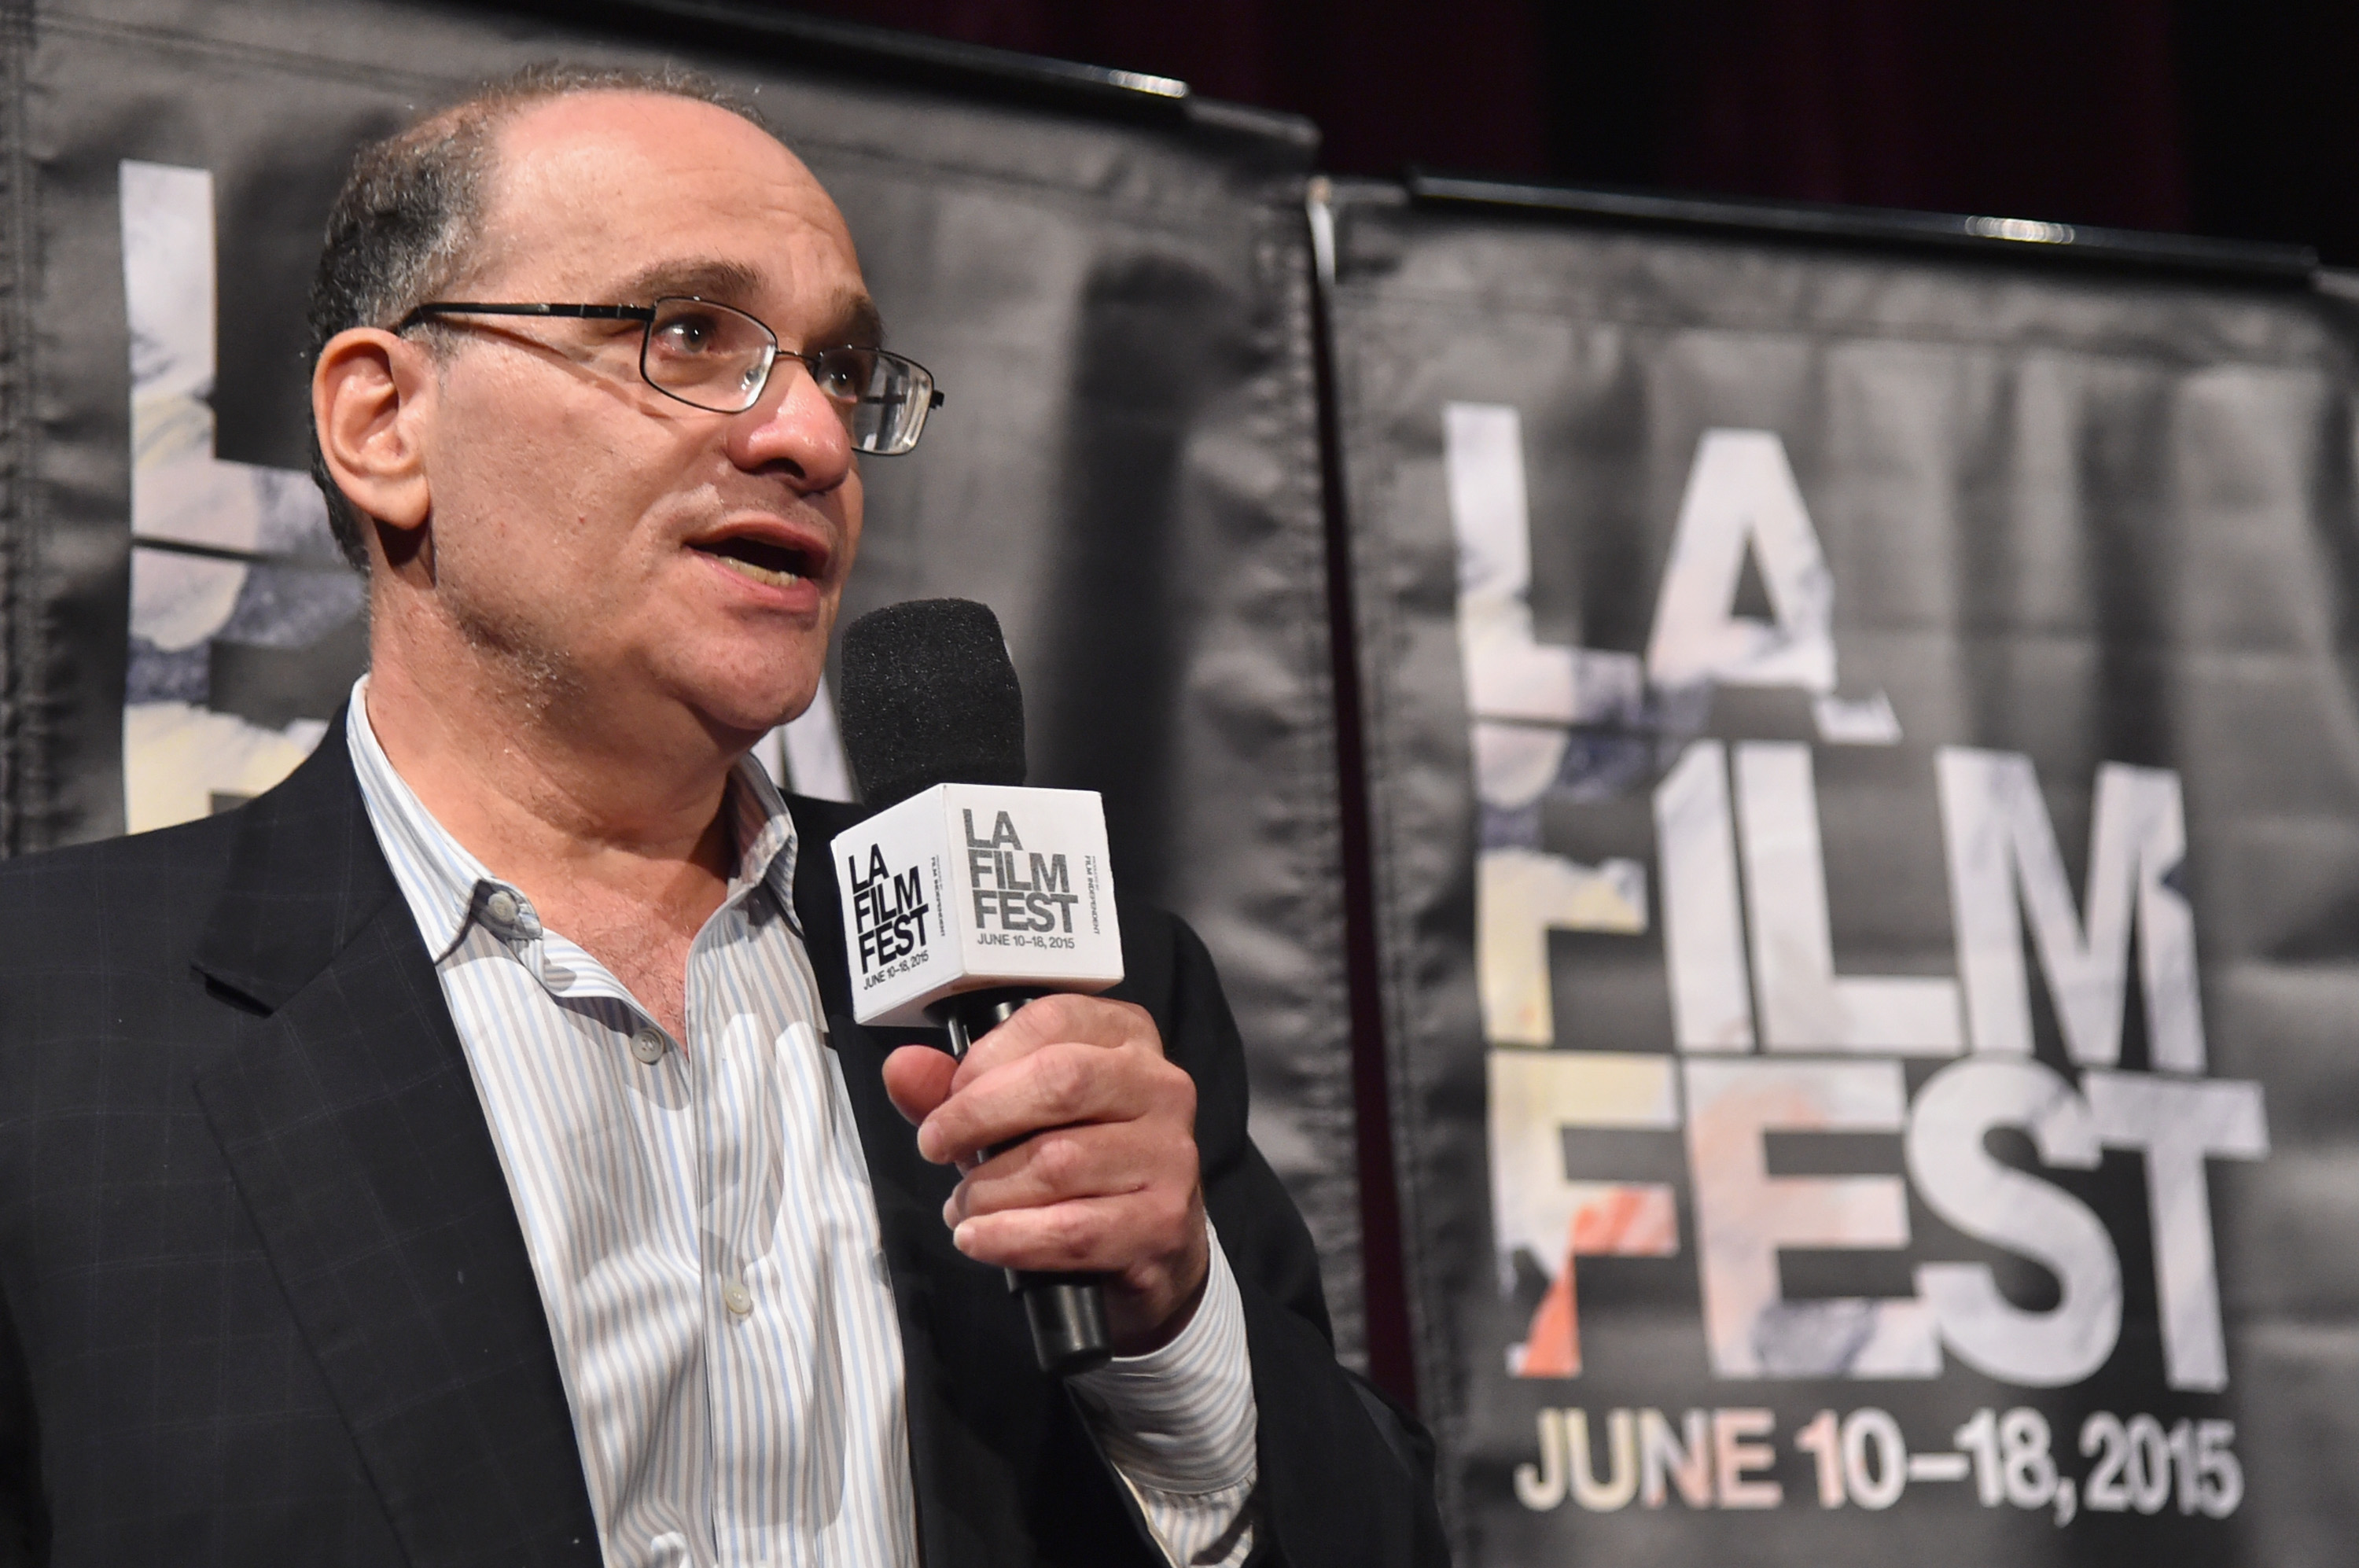 LOS ANGELES, CA - JUNE 14: Executive producer Bob Weinstein attends the MTV and Dimension TV premiere of  Scream  at the Los Angeles Film Festival on June 14, 2015 in Los Angeles, California. (Photo by Alberto E. Rodriguez/WireImage for MTV Communications)